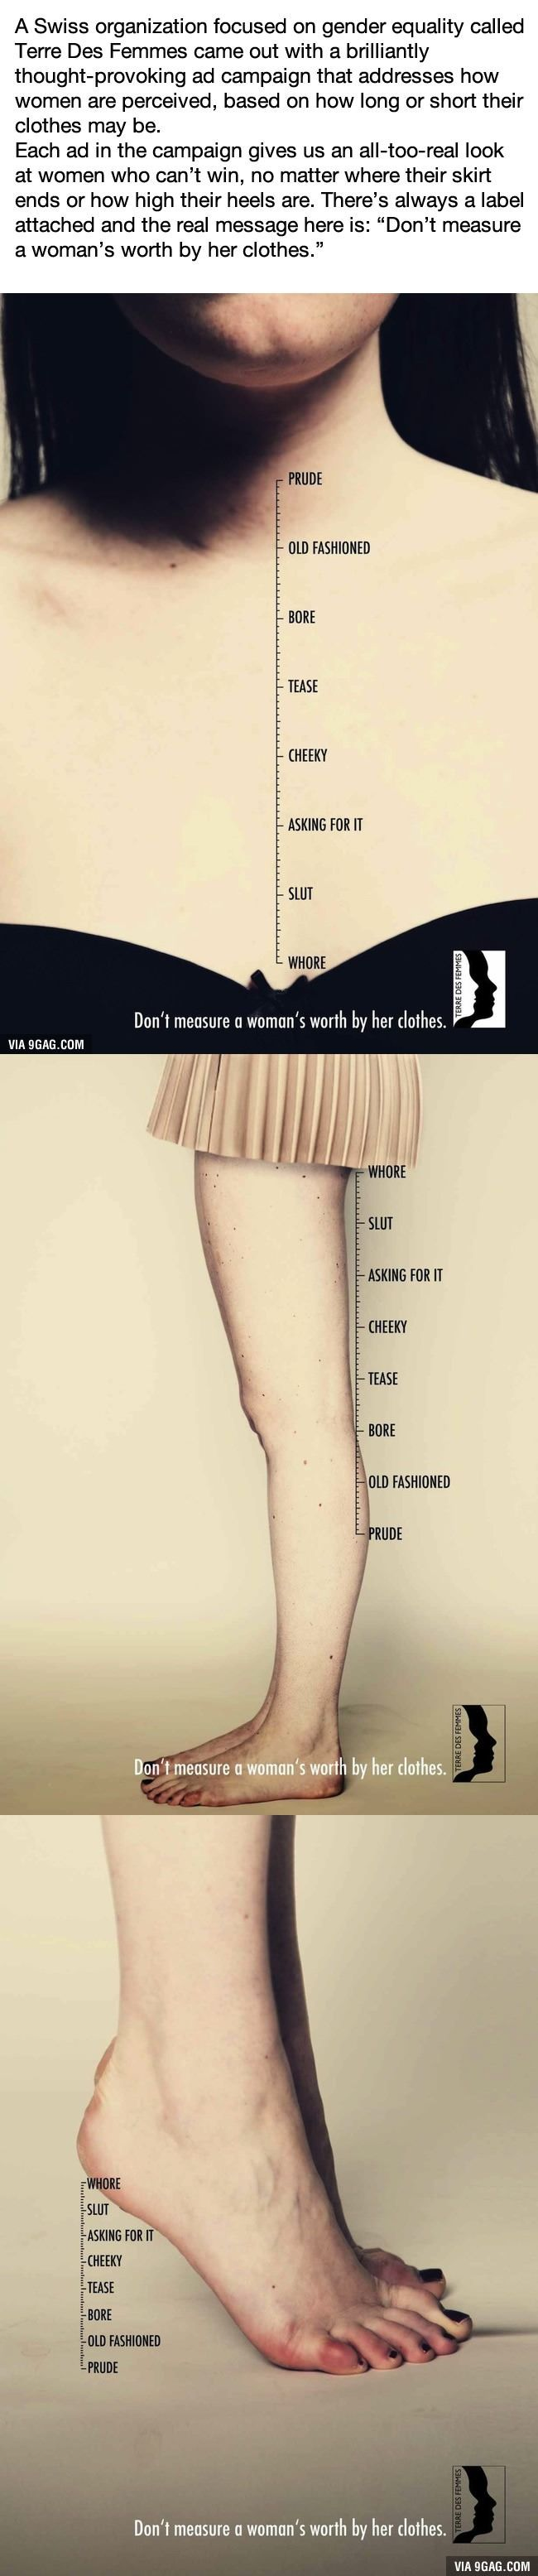 You'll Rethink Judging A Woman By Her Clothes After One Look At This Campaign